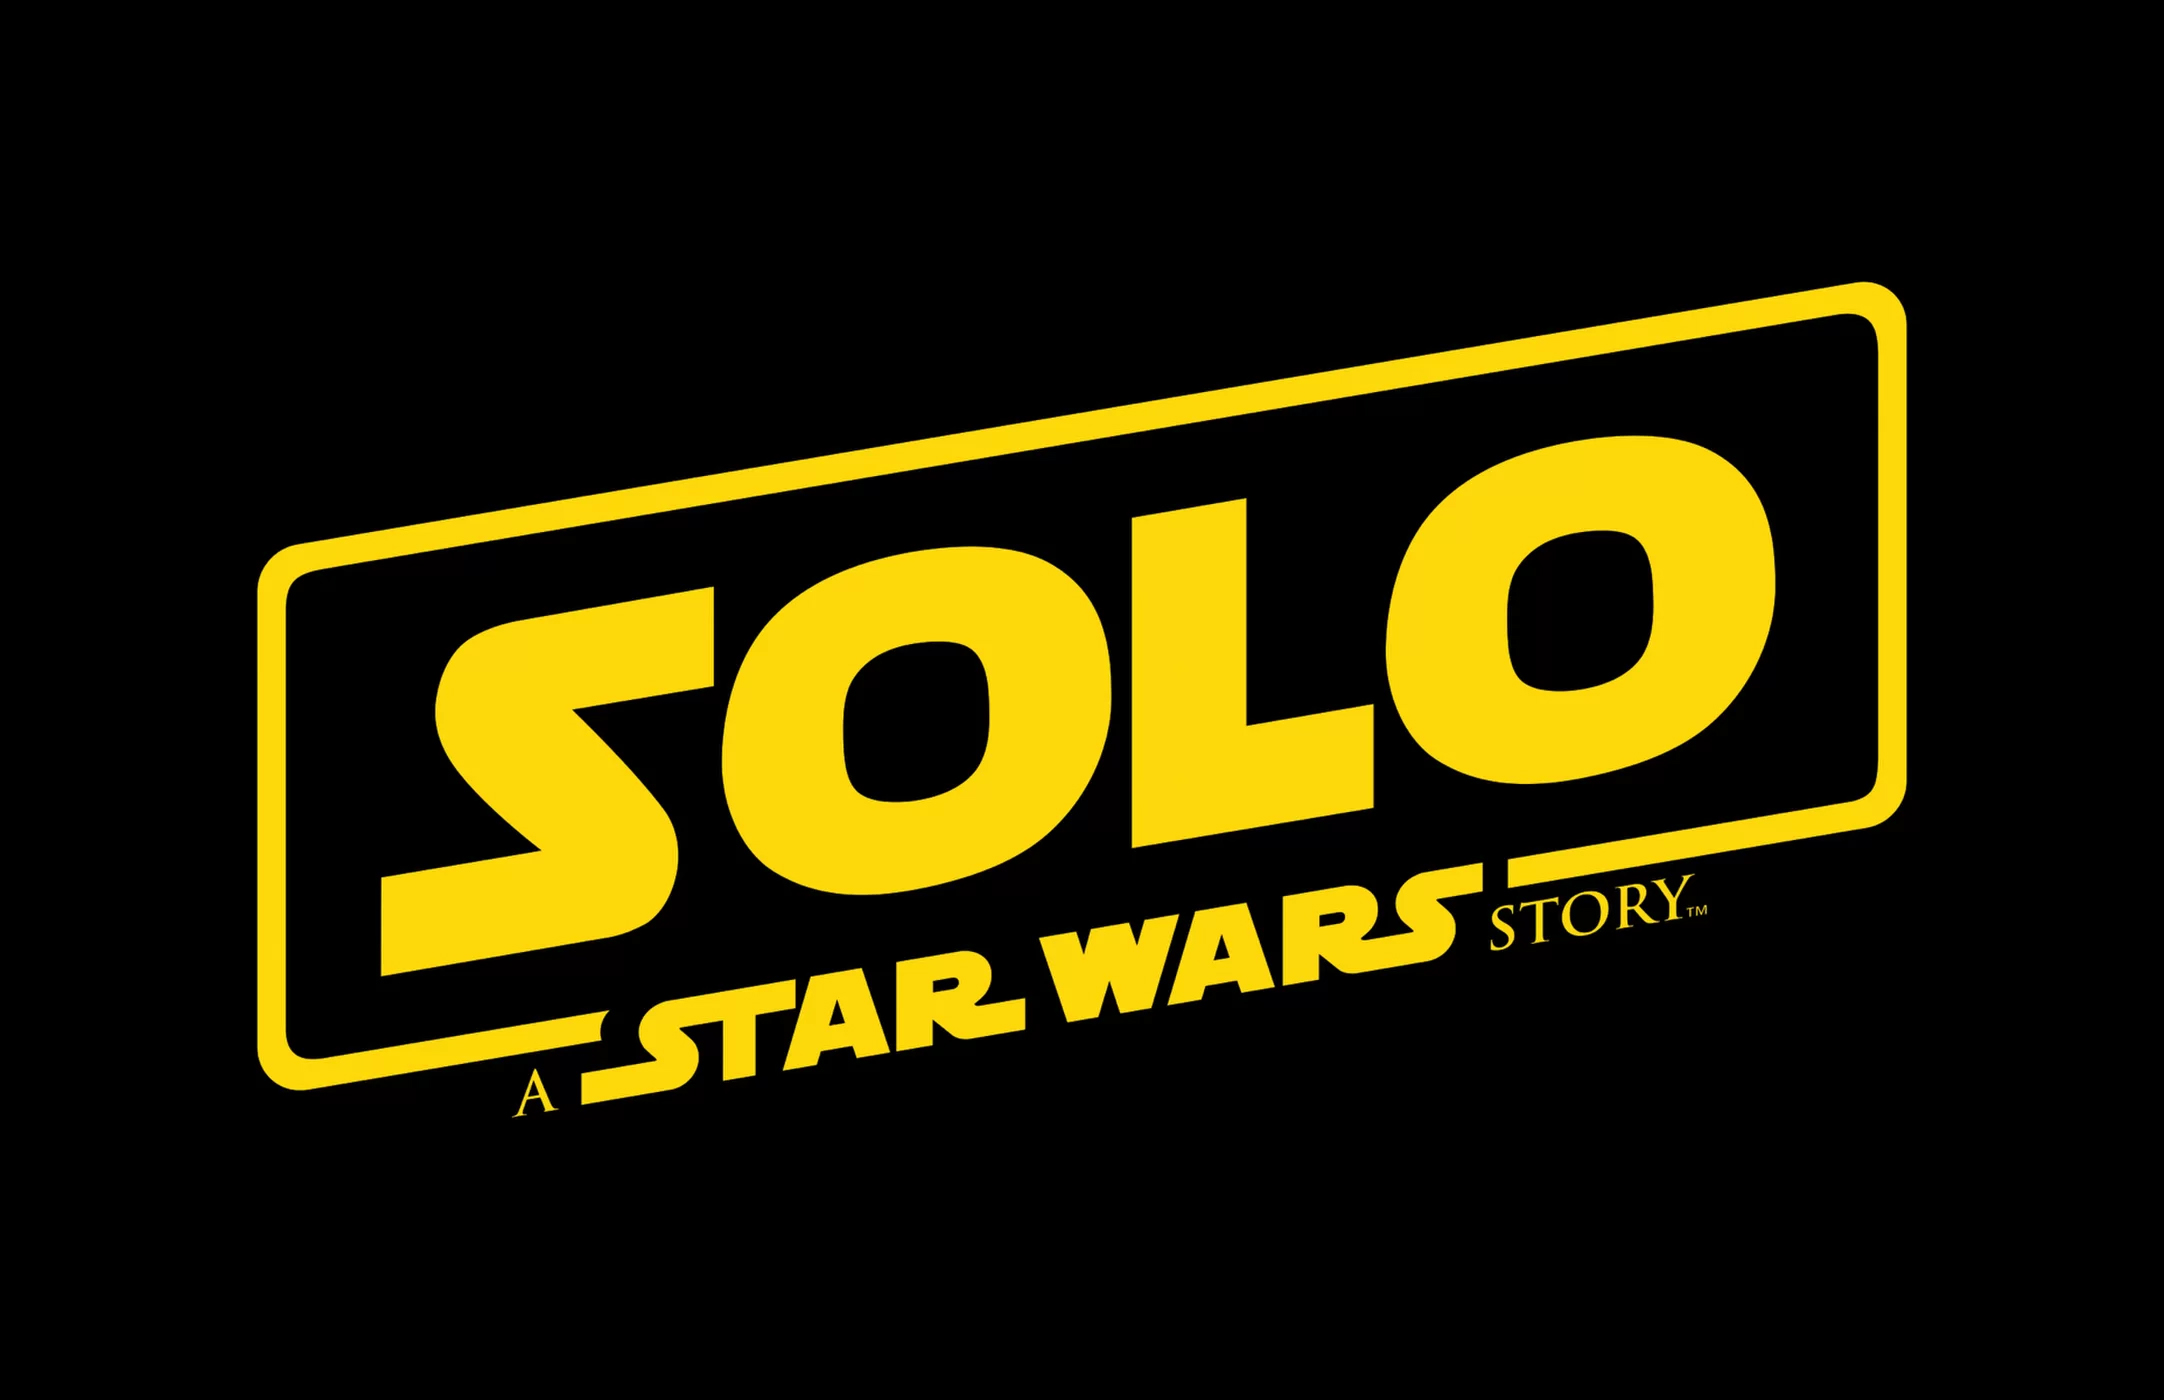 Solo: A Star Wars Story\' Logo and Official Description.